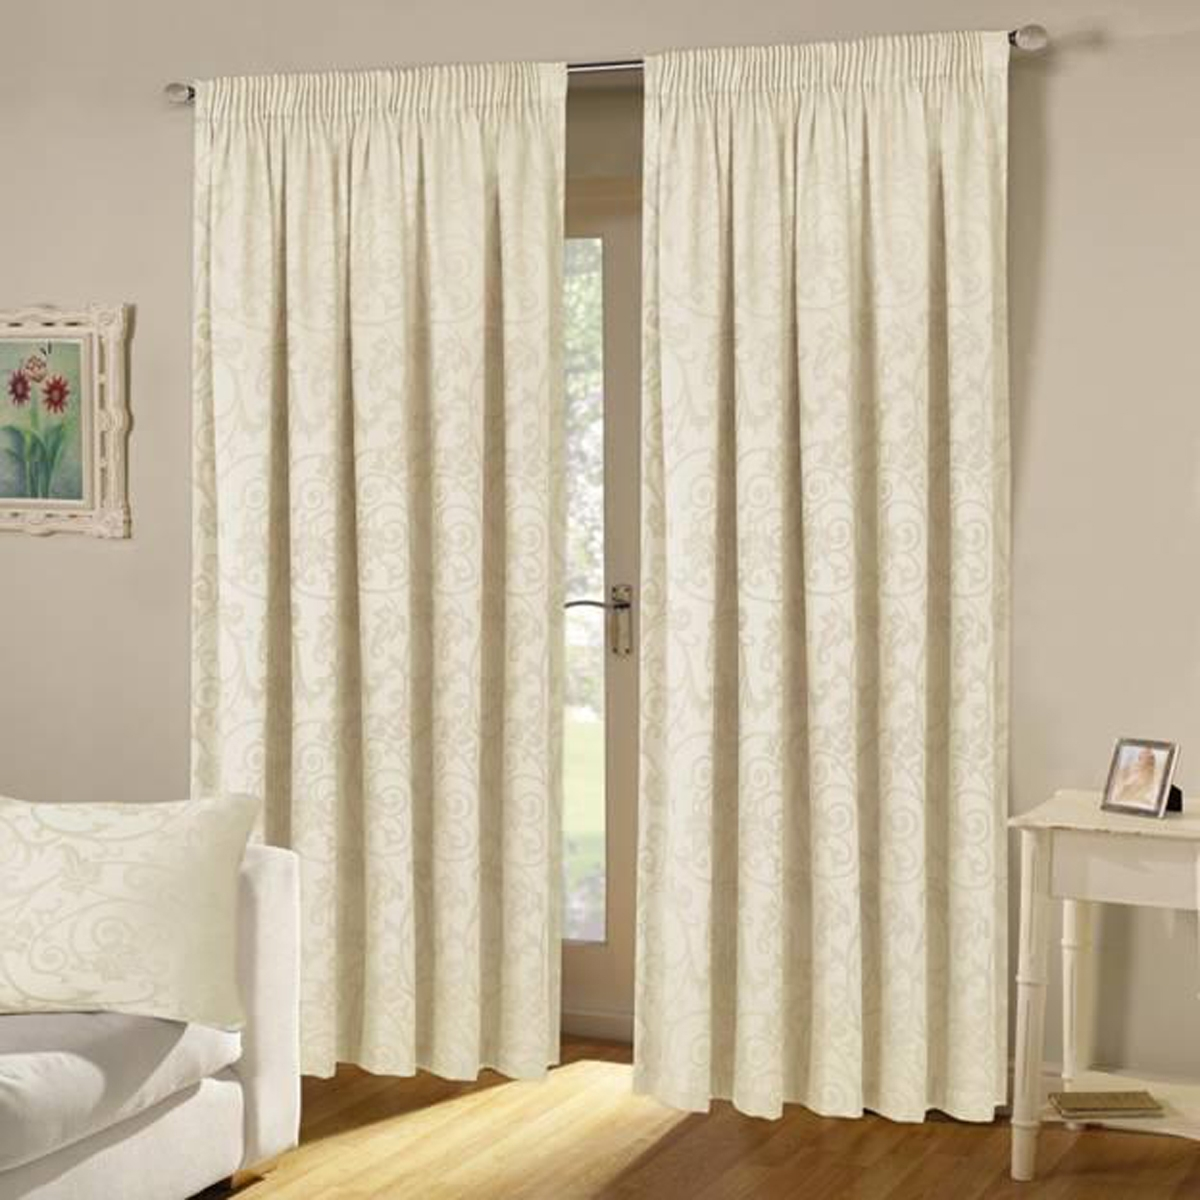 Turin Lined Curtains In Cream Free Uk Delivery Terrys Fabrics Pertaining To Cream Lined Curtains (Image 15 of 15)